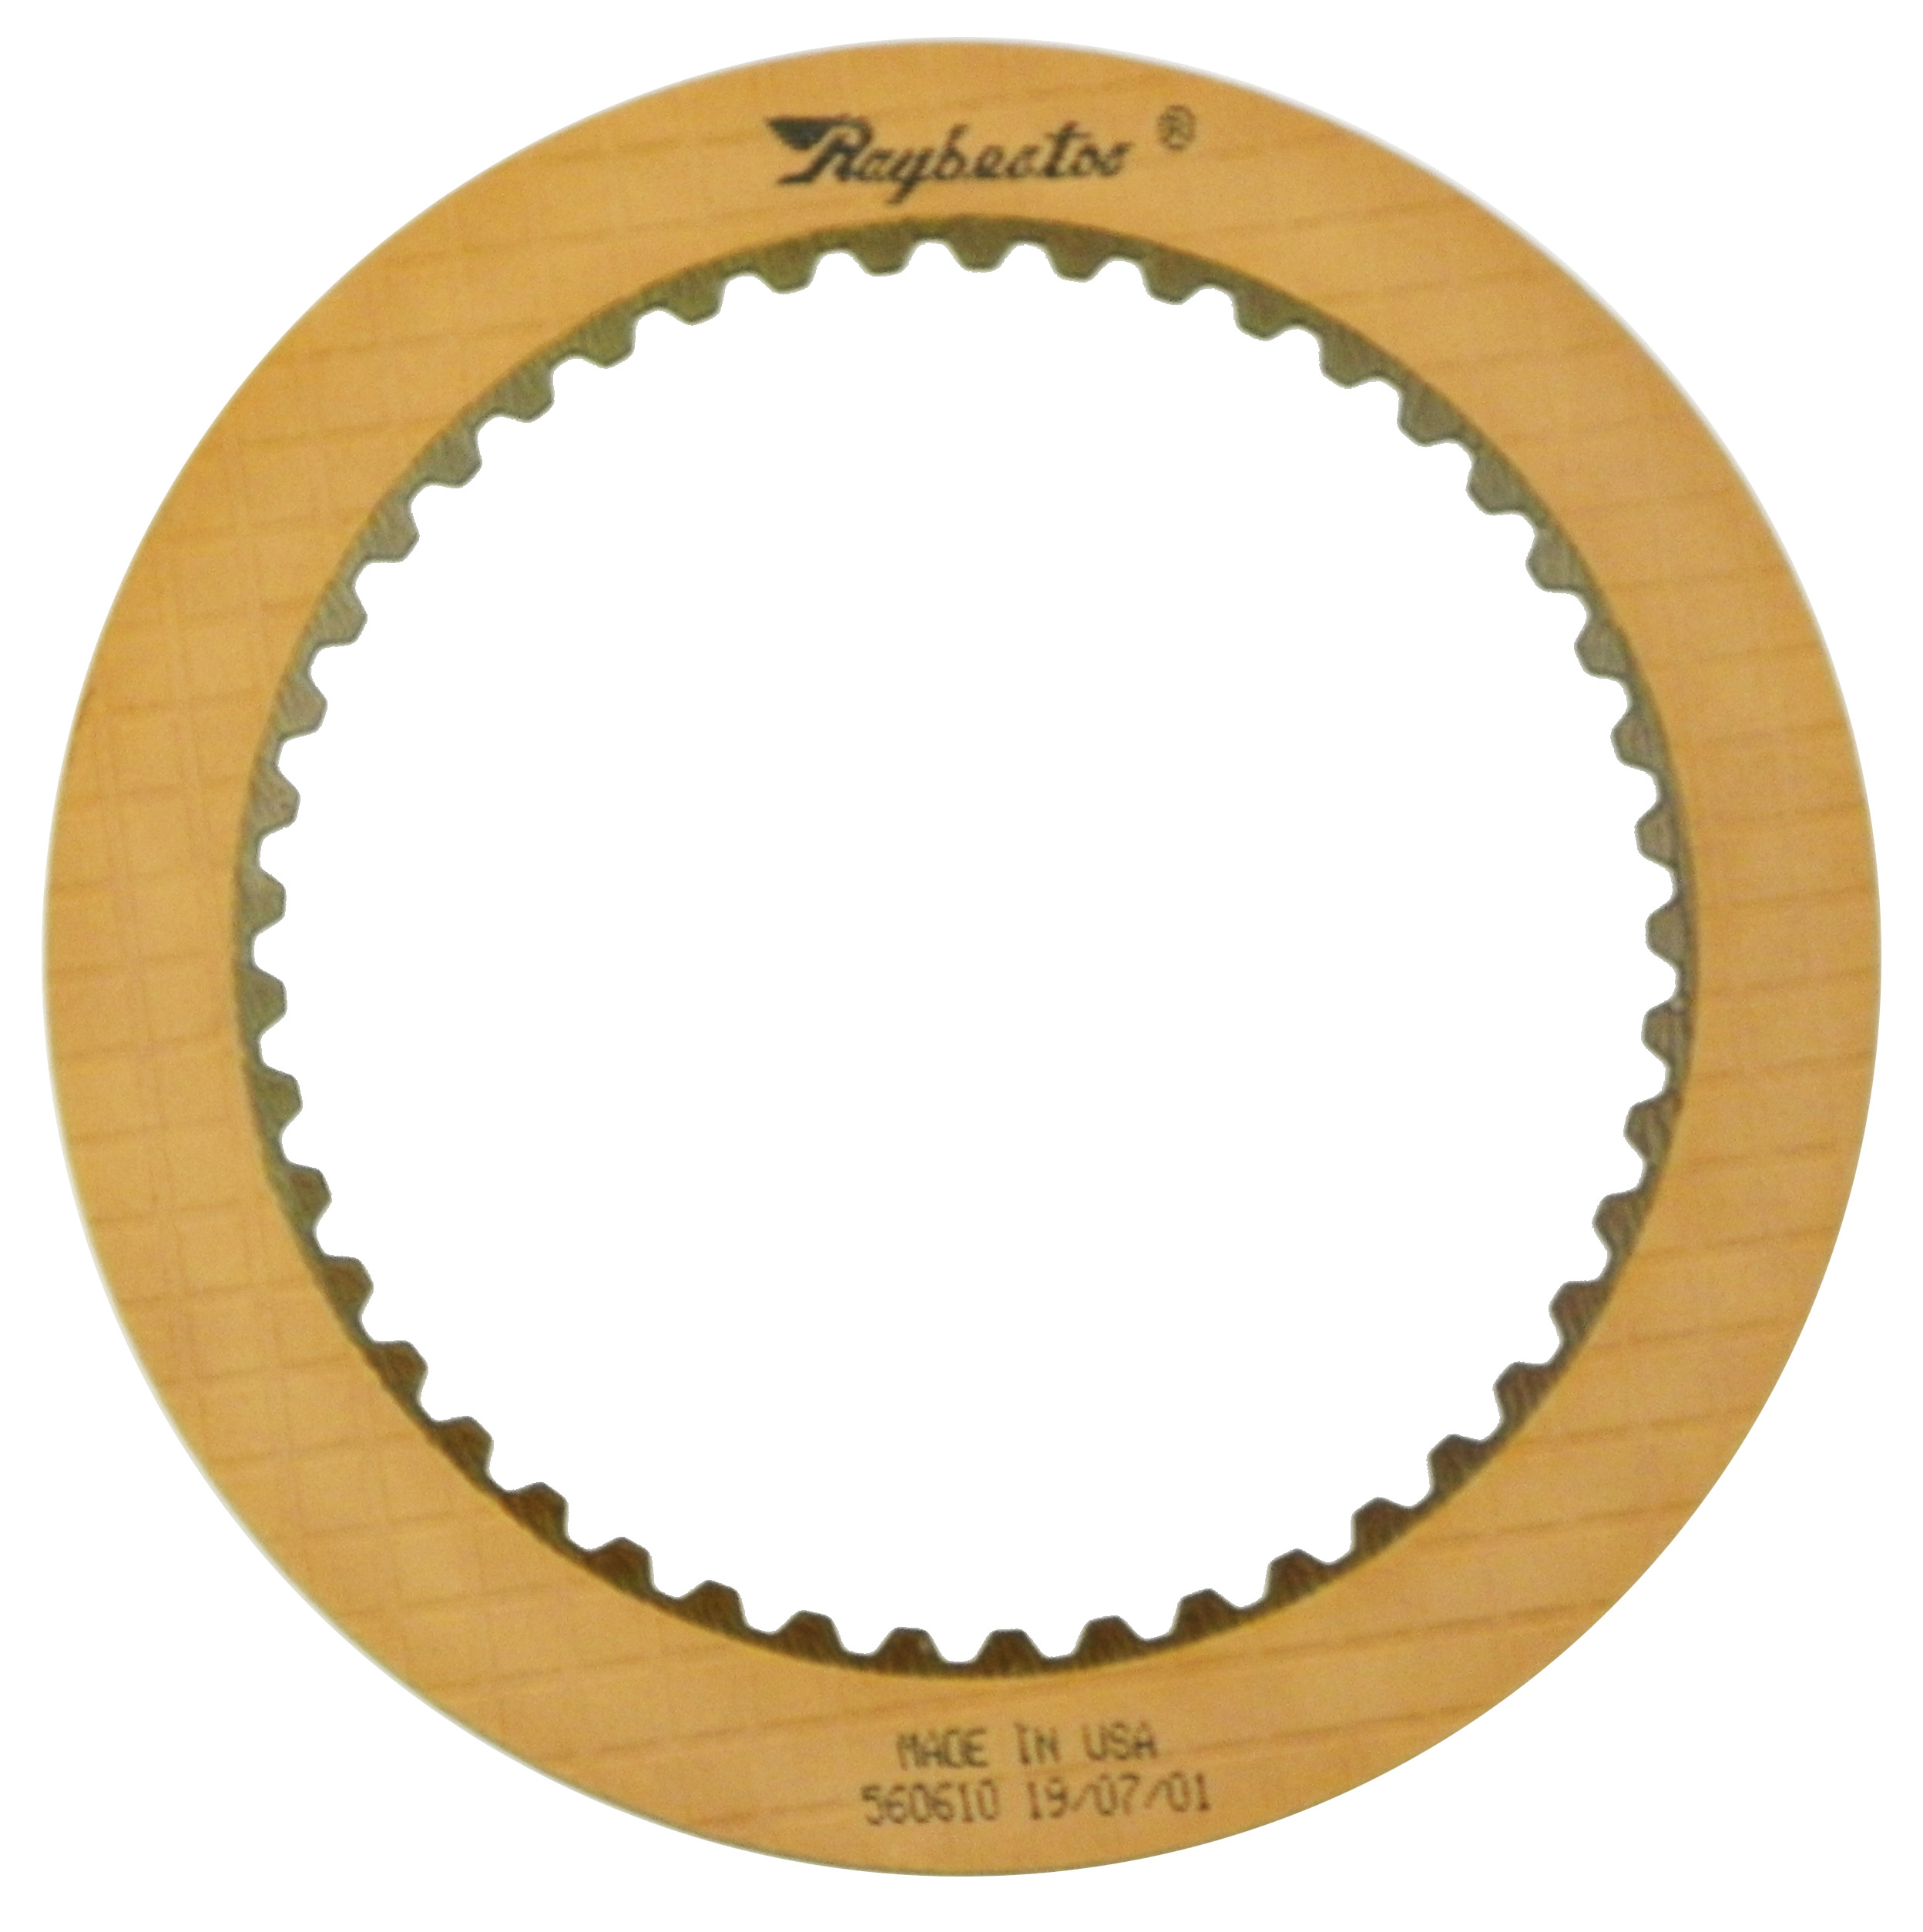 TF6, A904, A999, A999, A500 / 44RE, 40RH, 42RH, 44RH, 42RE OE Replacement Friction Clutch Plate